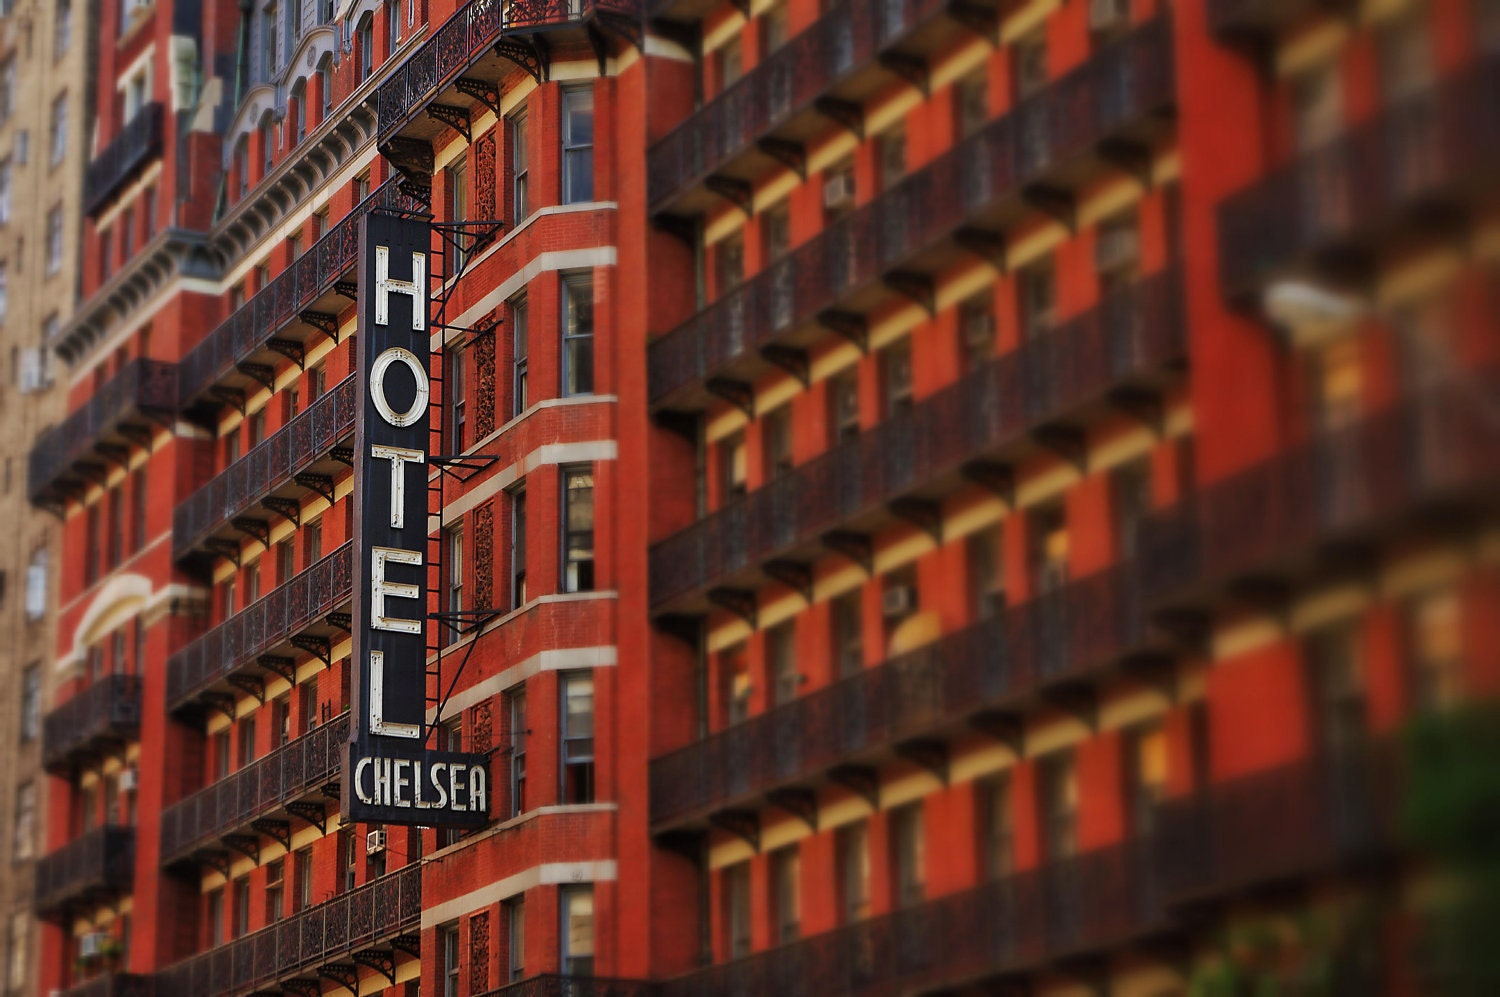 new york city photography chelsea hotel by jaybwilsonphoto. Black Bedroom Furniture Sets. Home Design Ideas